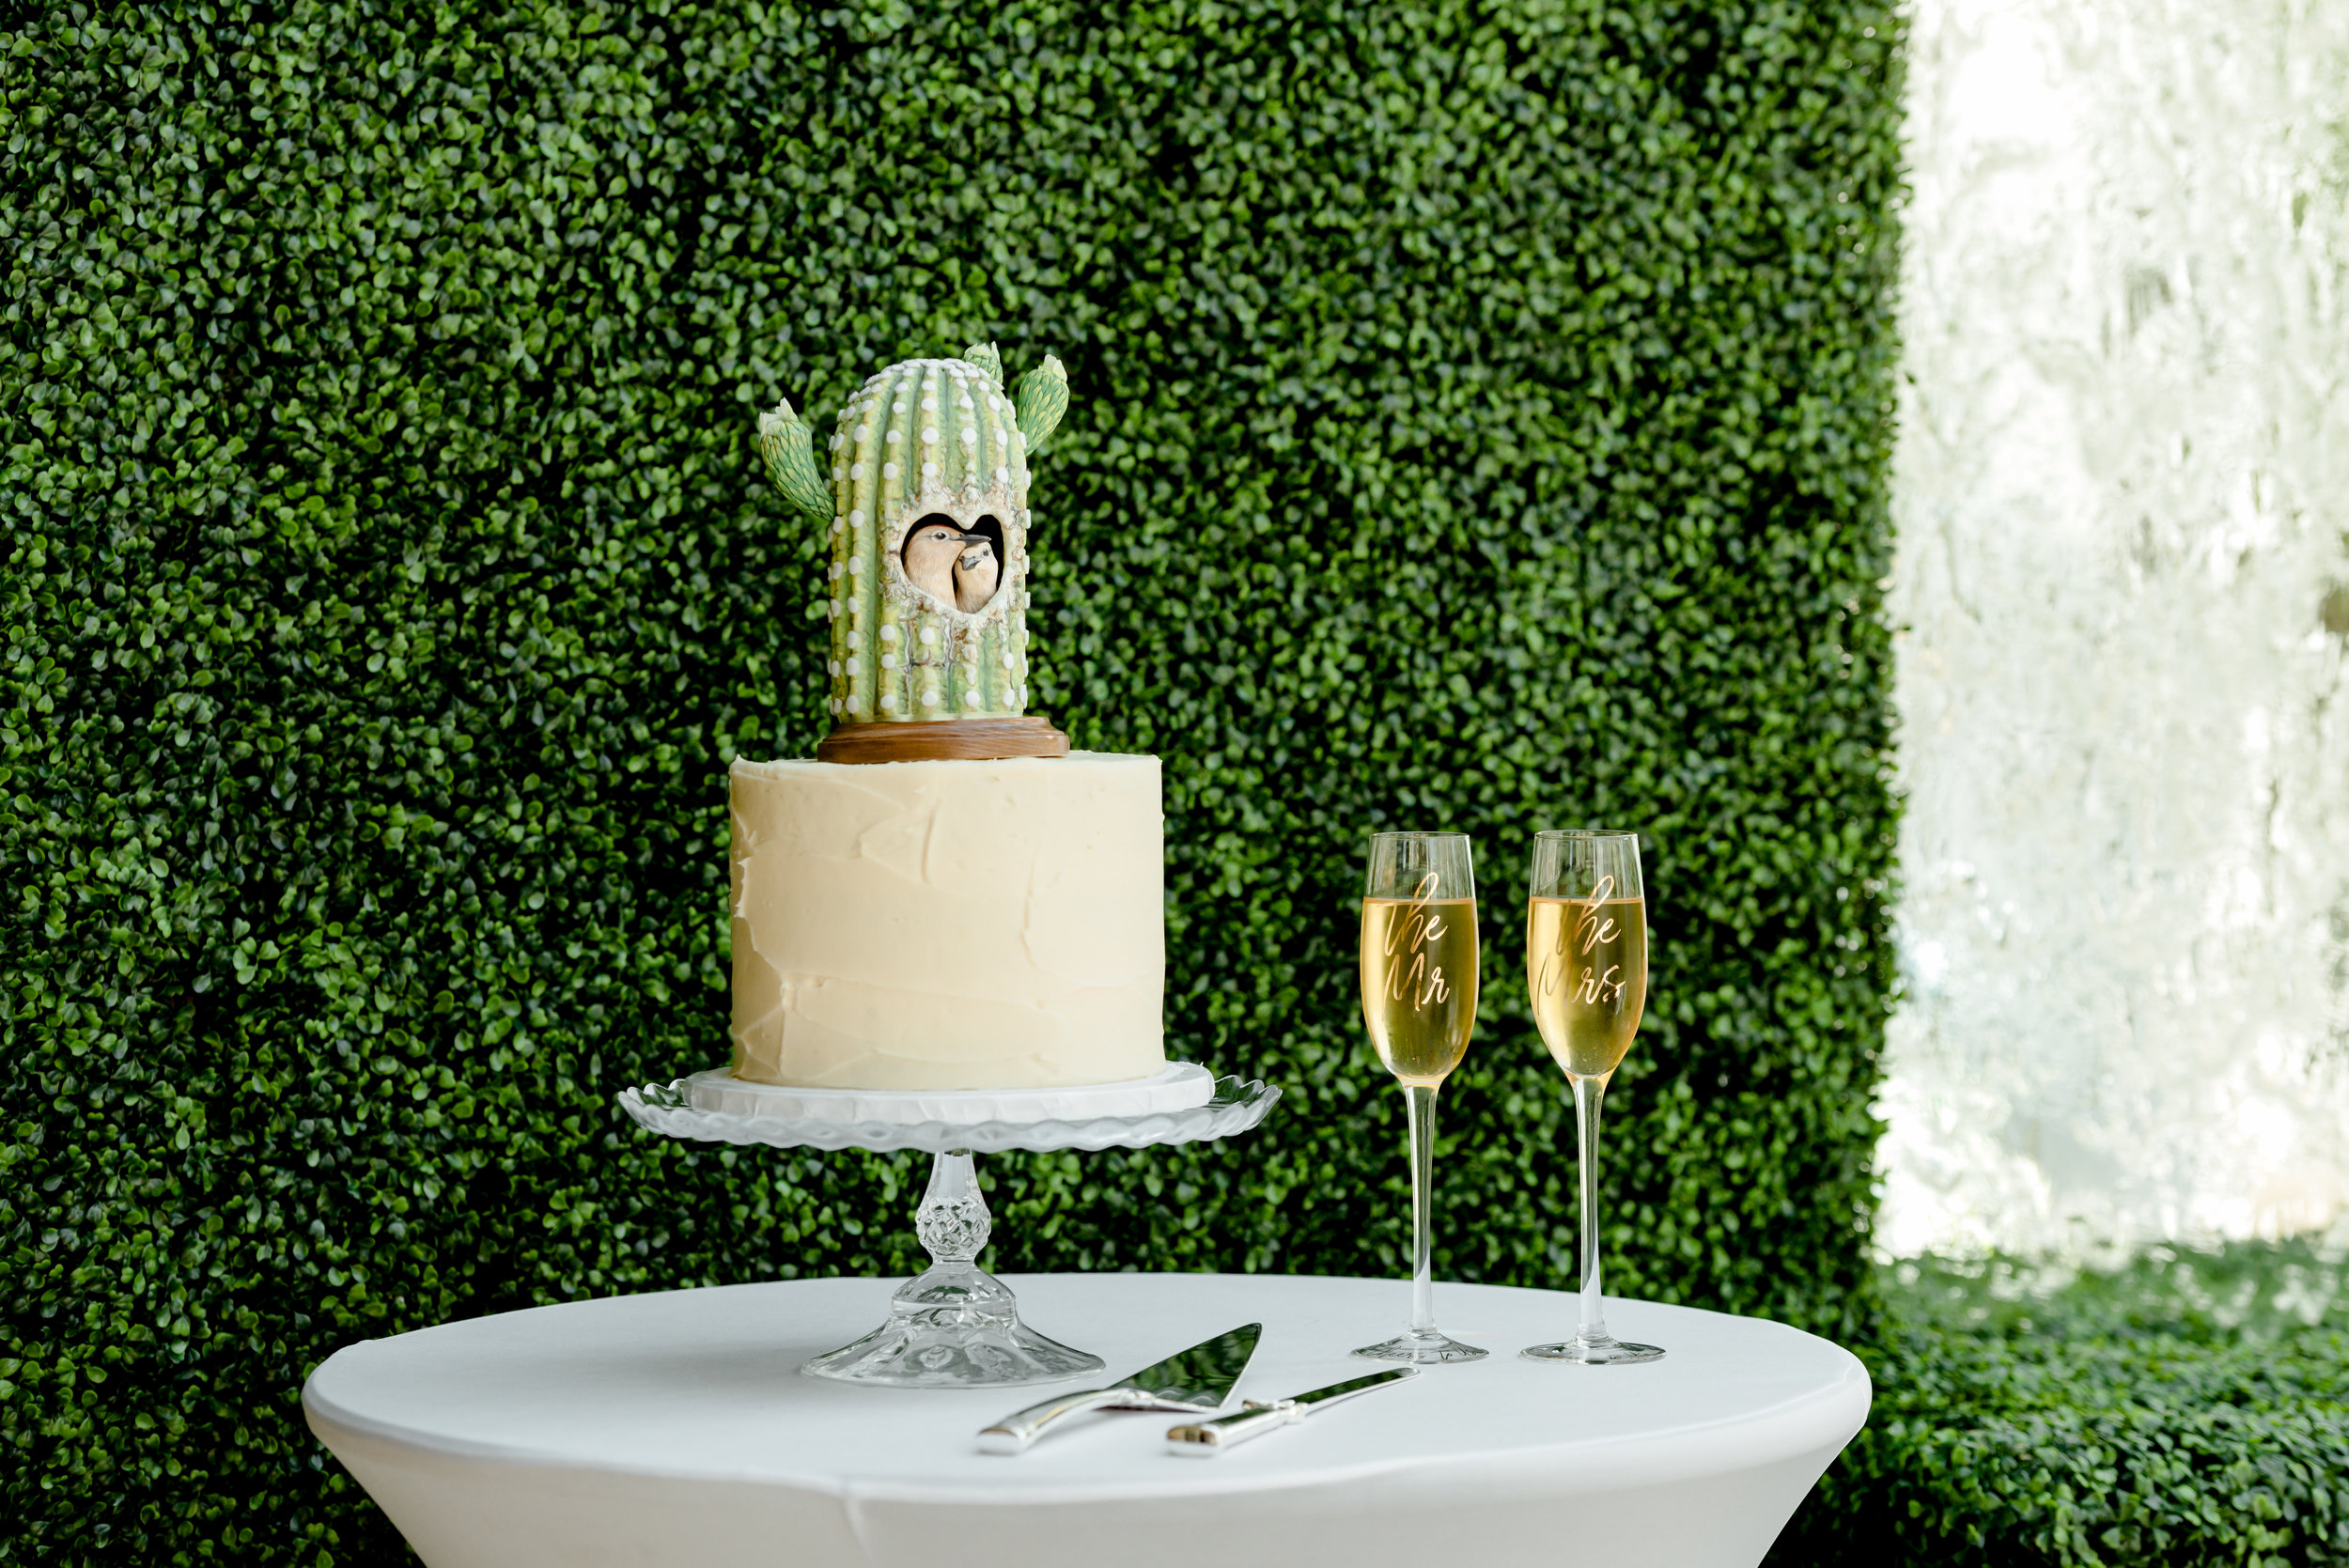 5120 Restaurant and Onyx Bar Wedding Reception - Wedding Cake and Champagne - Brunch Wedding Reception - St. Paul Wedding and Elopement Photographer